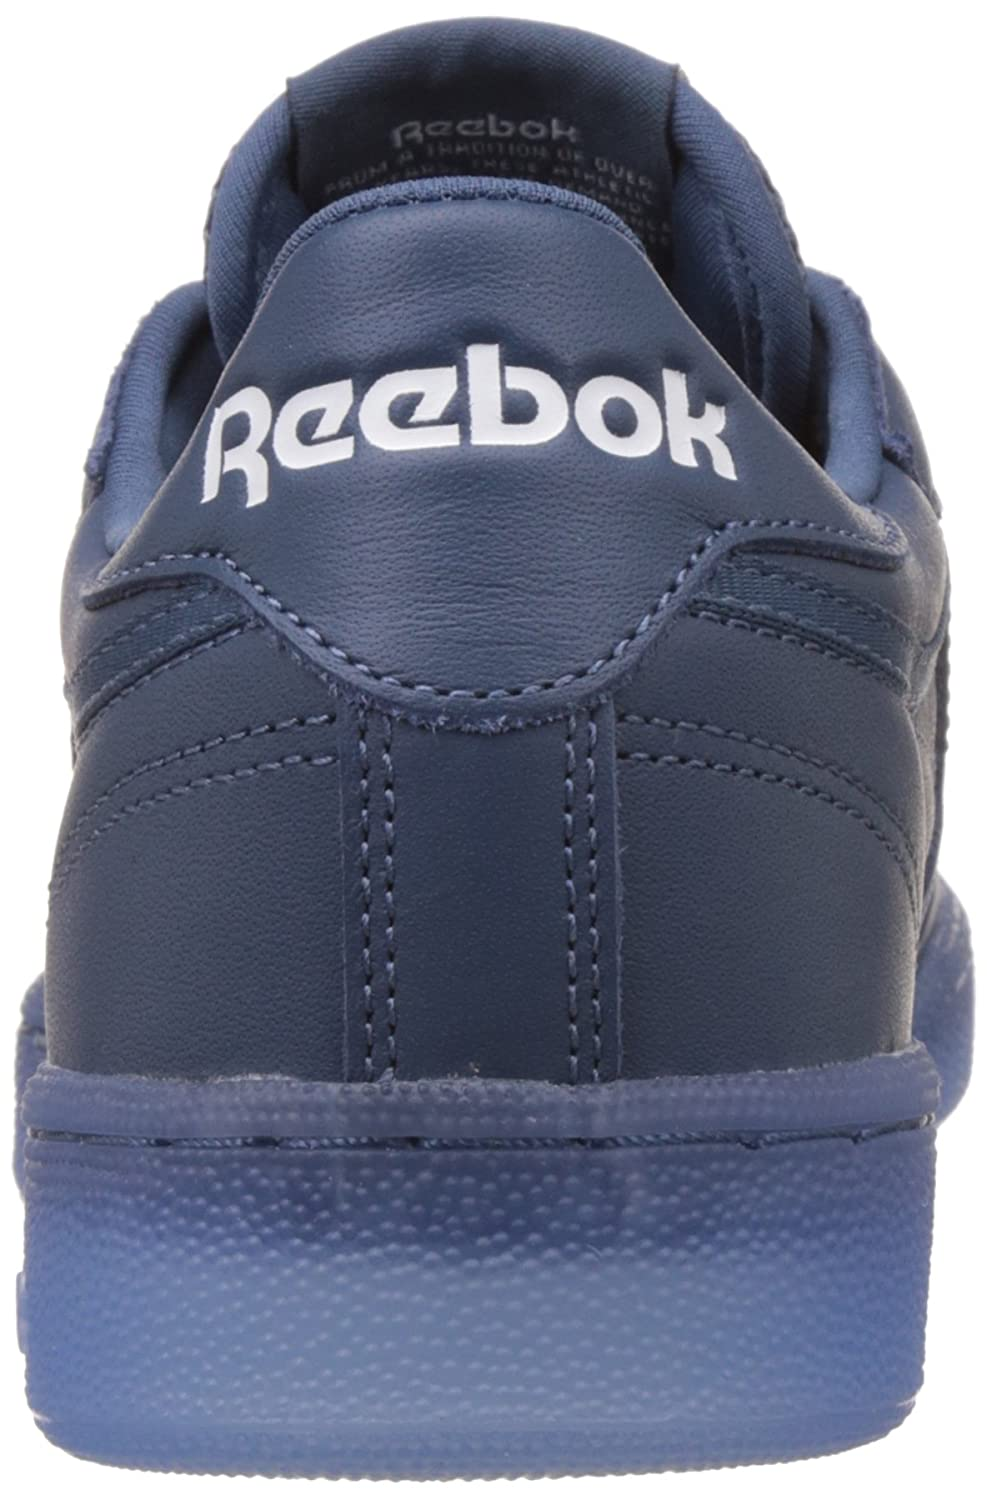 7e4c47e4130e0 Reebok Club C 85 Ice Mens Trainers Dark Blue - 10 UK  Amazon.co.uk  Shoes    Bags